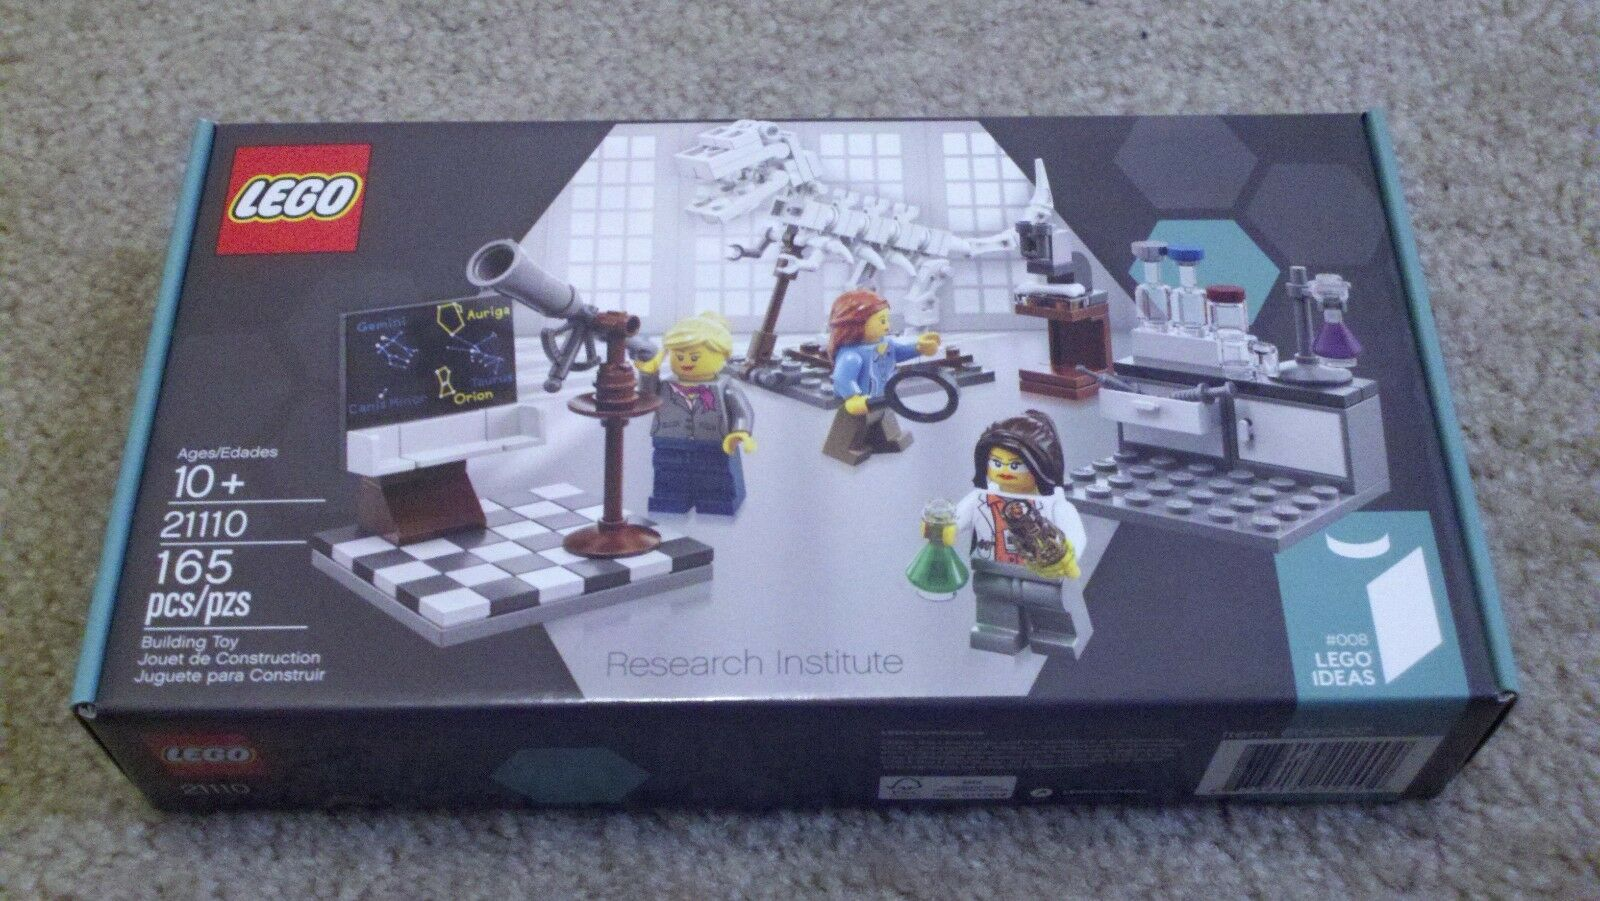 LEGO LEGO LEGO IDEAS Research Institute (21110) - New & Sealed 029020